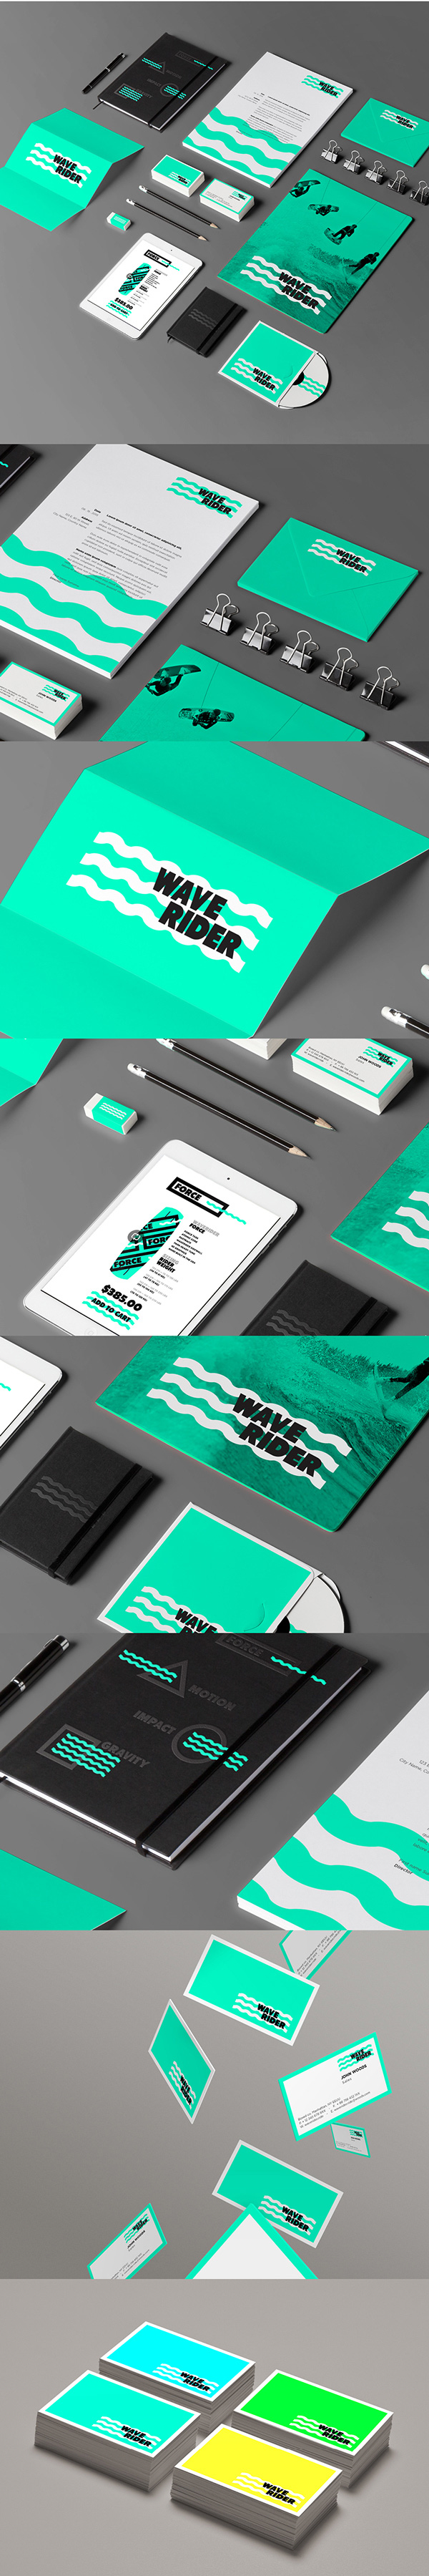 2.Visual Identity and Branding Series  WAVE RIDER